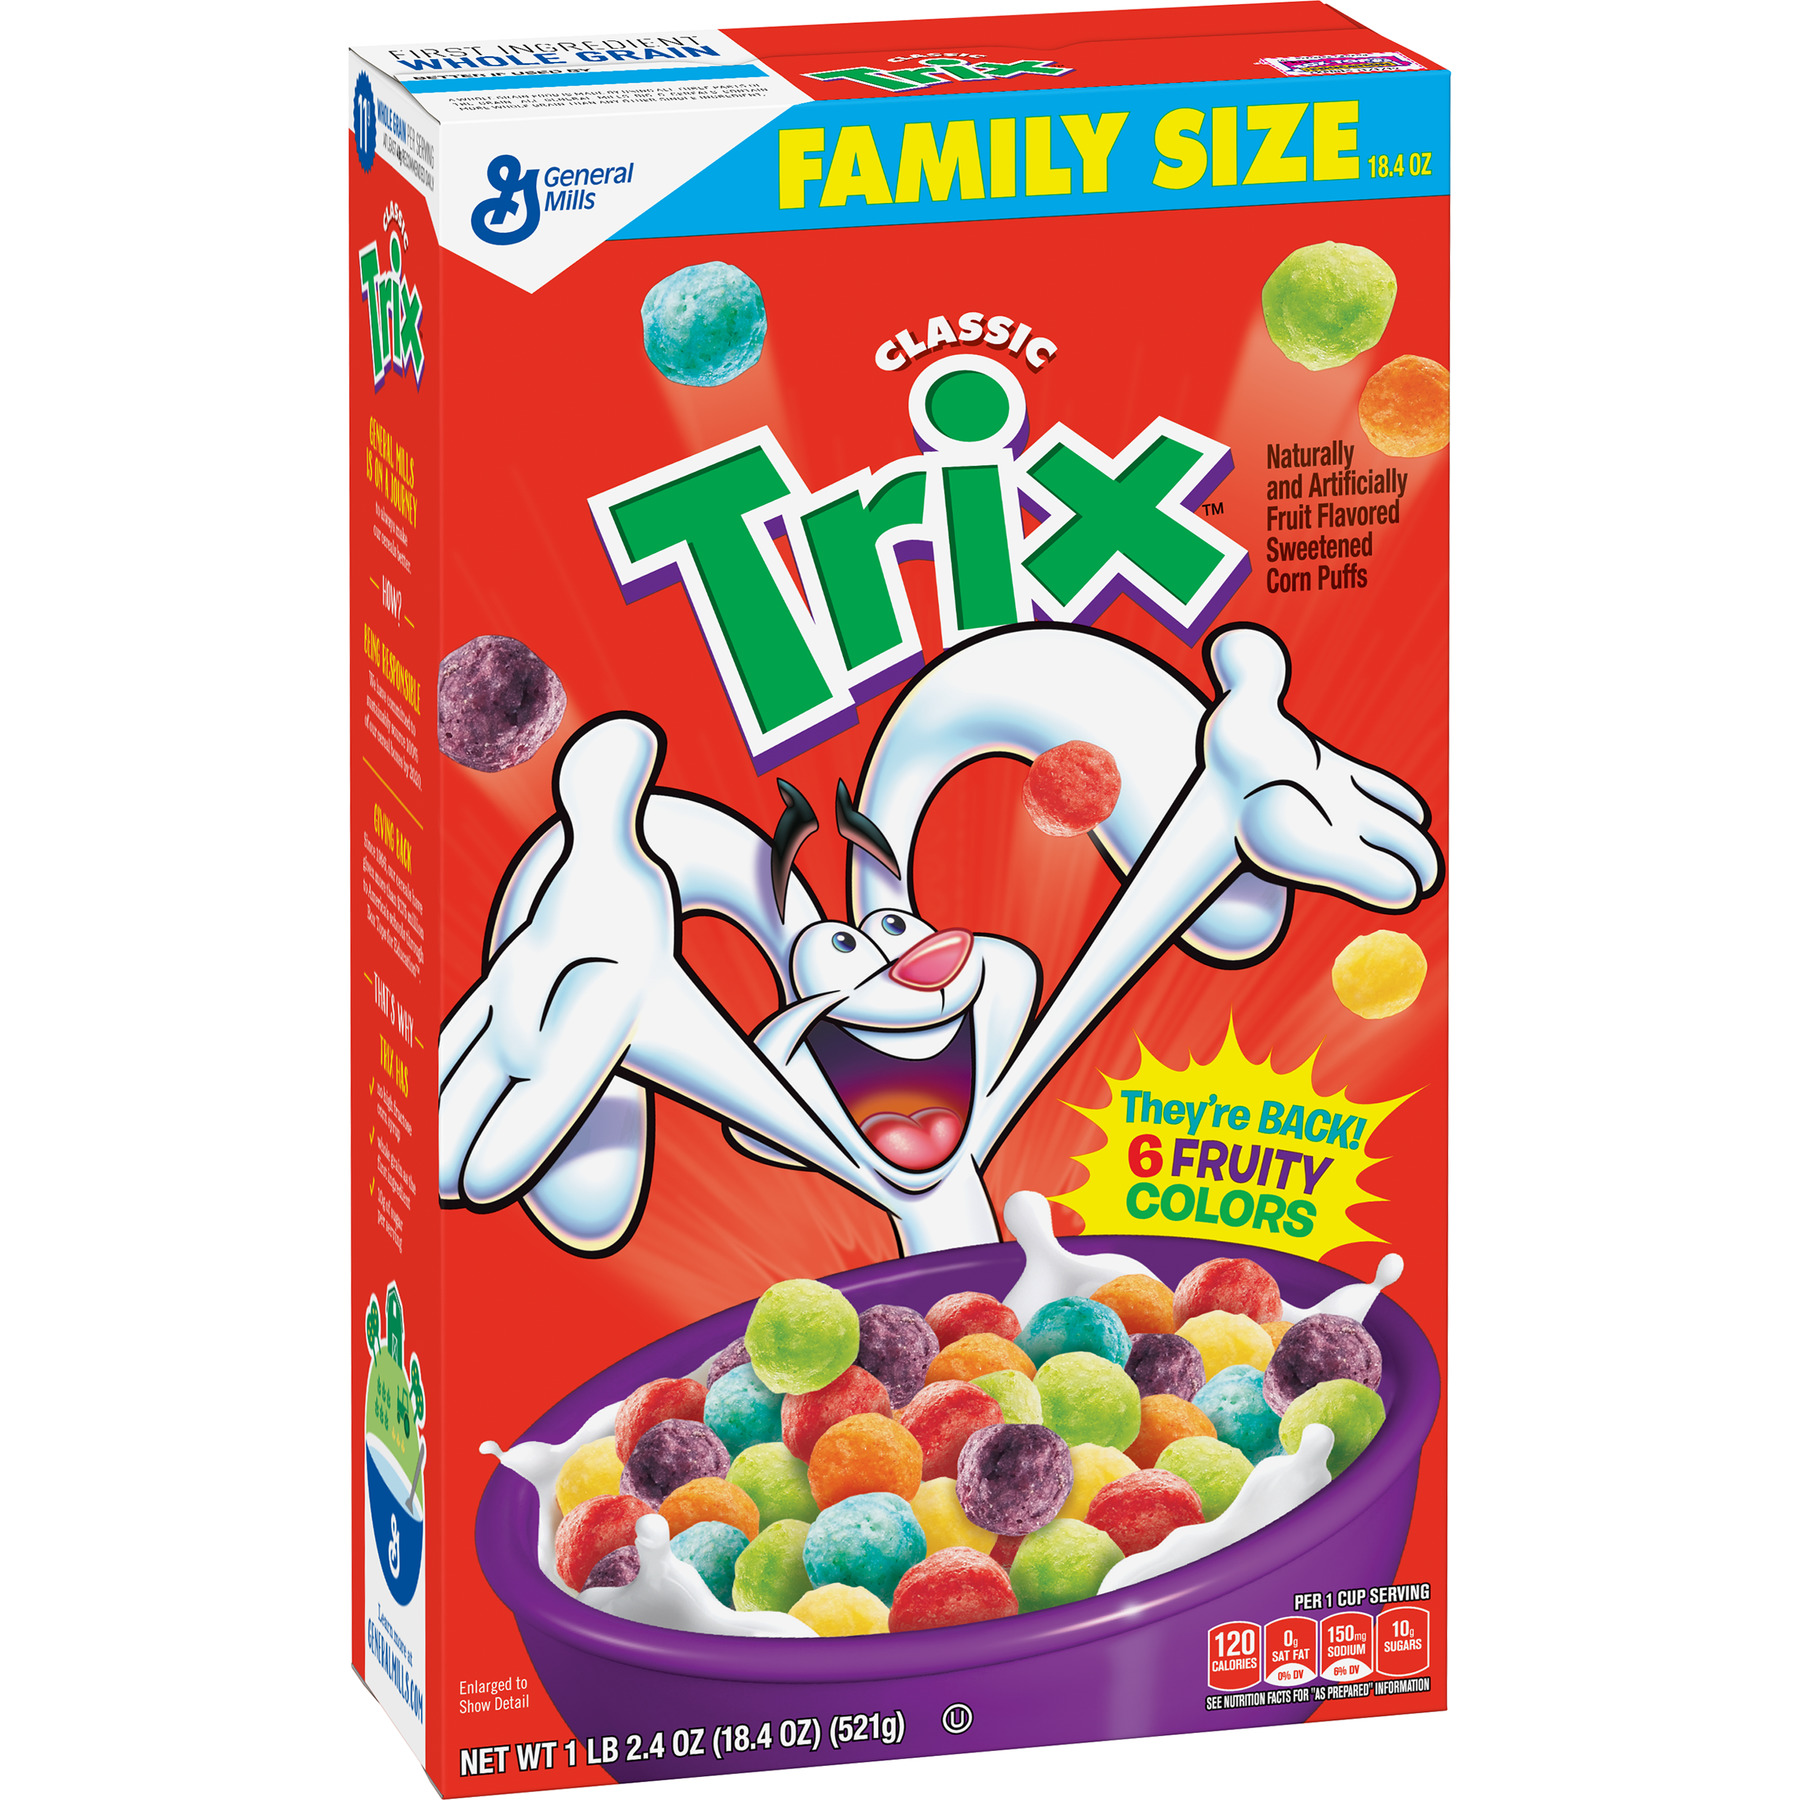 (2 Pack) Trix Cereal, Fruit Flavored Corn Puffs Cereal, 18.4 oz